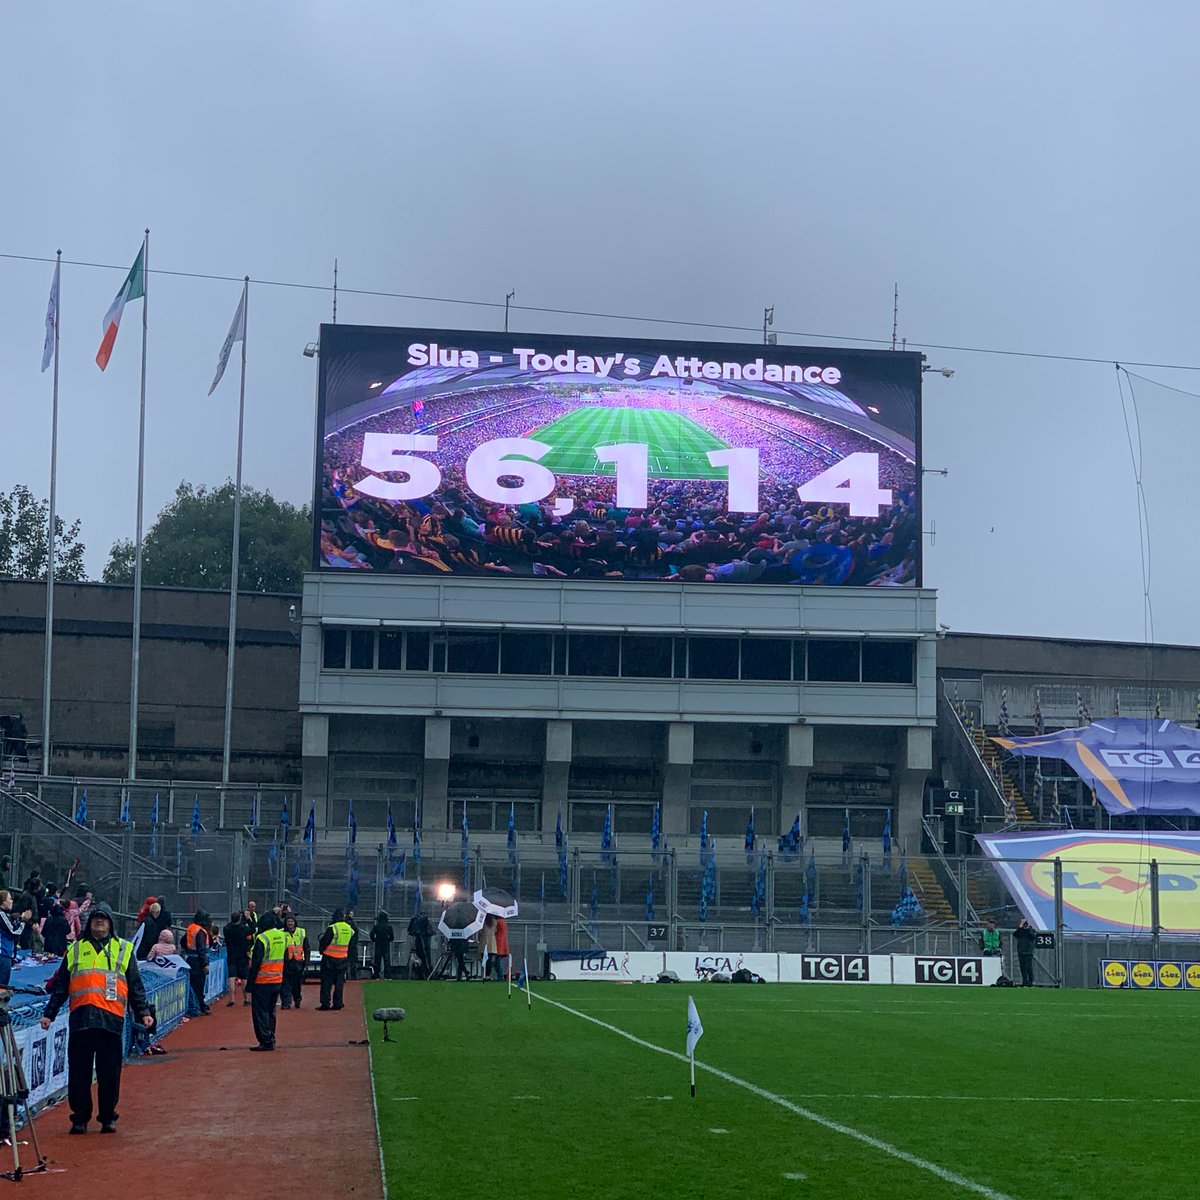 test Twitter Media - 🏟 A record breaking 56,114 fans are in attendance at @CrokePark today for the 2019 @TG4TV All-Ireland Ladies Football Finals!   🙌🏻Thank you to everyone who has travelled and supported the teams today!   #ProperFan https://t.co/jNPEAYgiZu